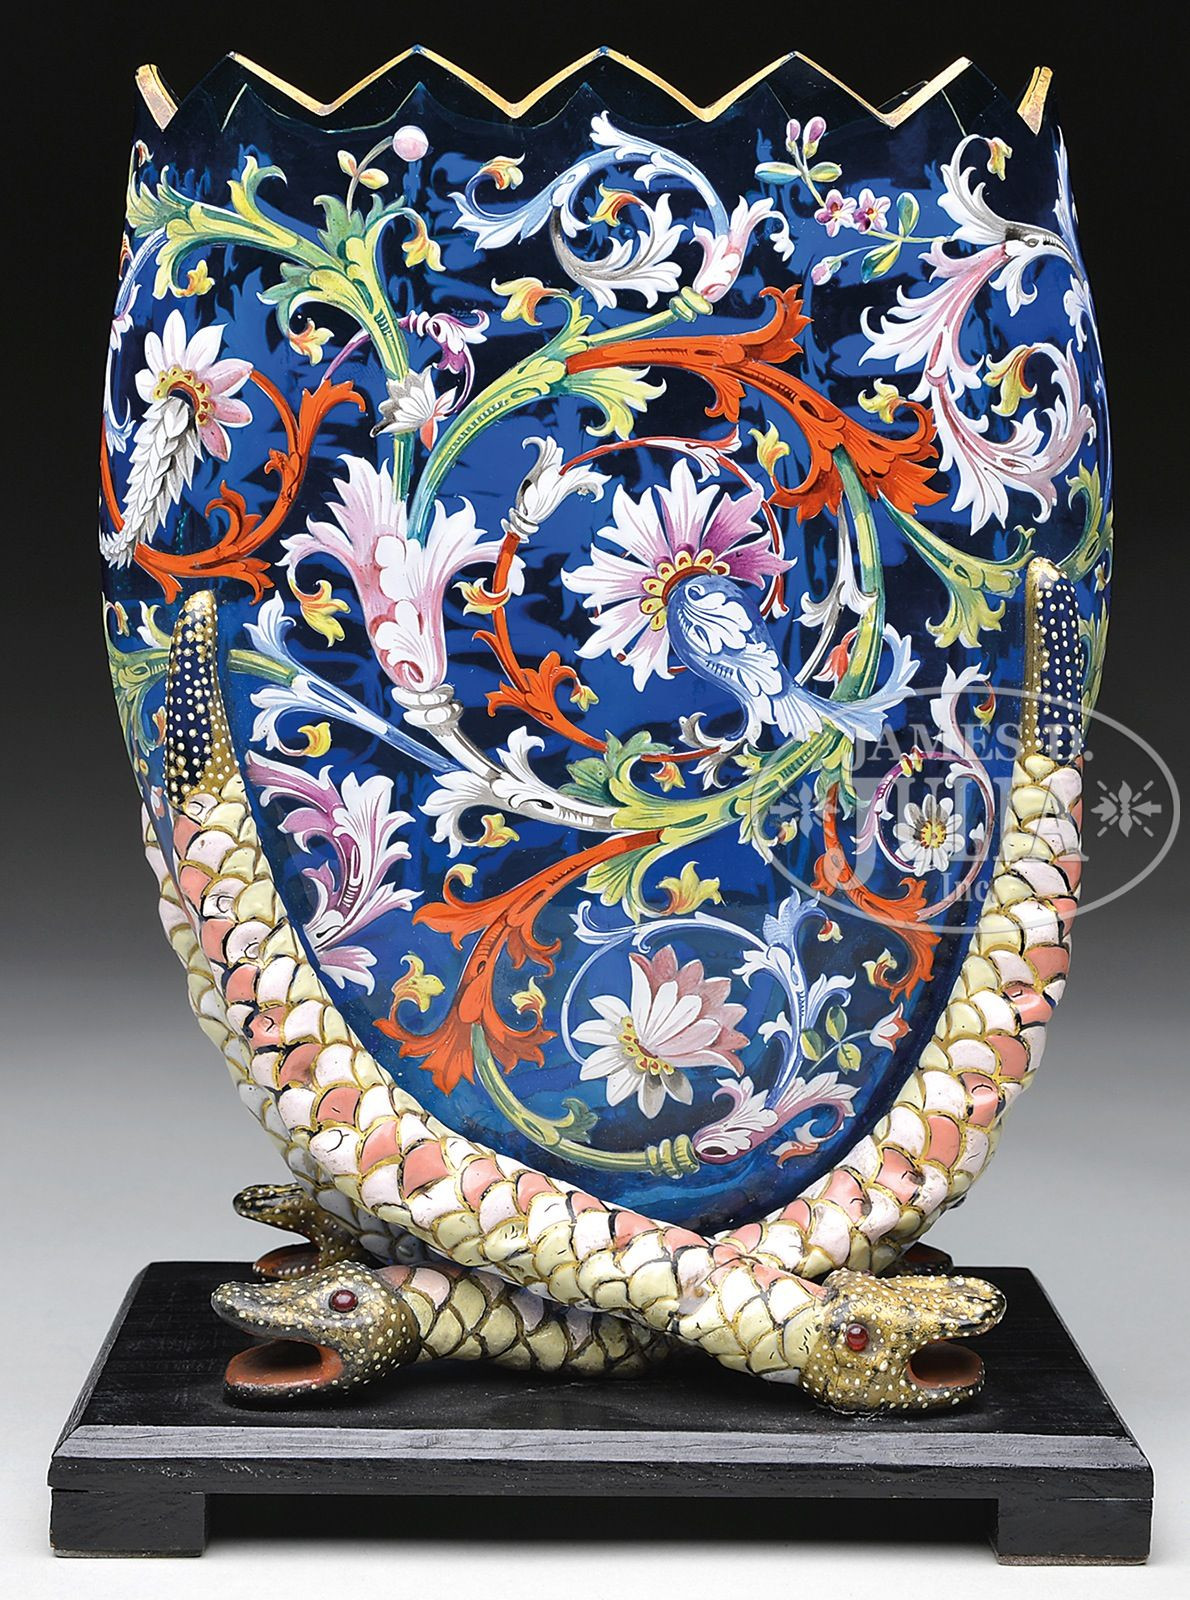 27 attractive Bohemia Crystal Vase Price 2021 free download bohemia crystal vase price of moser decorated vase is pictured in the book moser glass the in moser decorated vase is pictured in the book moser glass the klabin collection by gary d baldwin